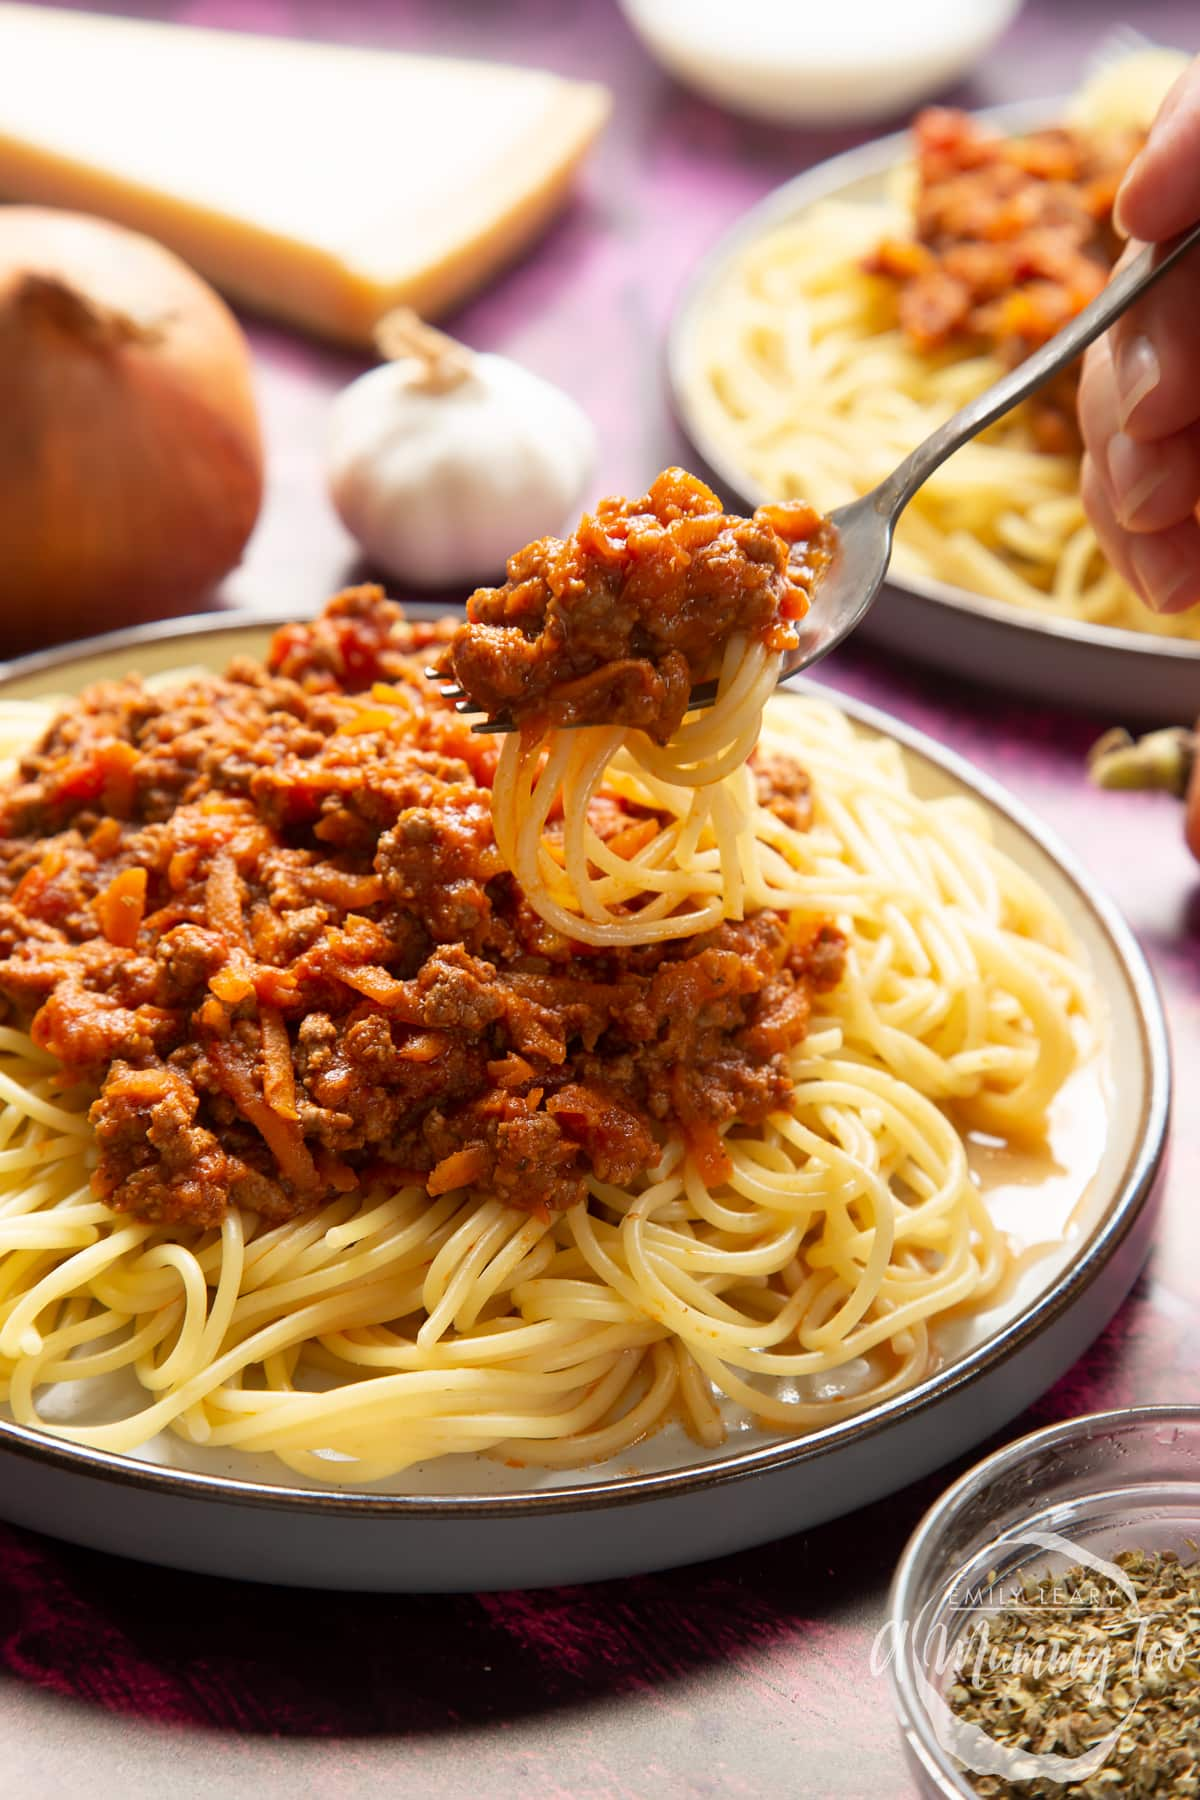 Side view of spaghetti bolognese Gordon Ramsay style served on plates. A hand holds a fork lifting spaghetti from the plate.